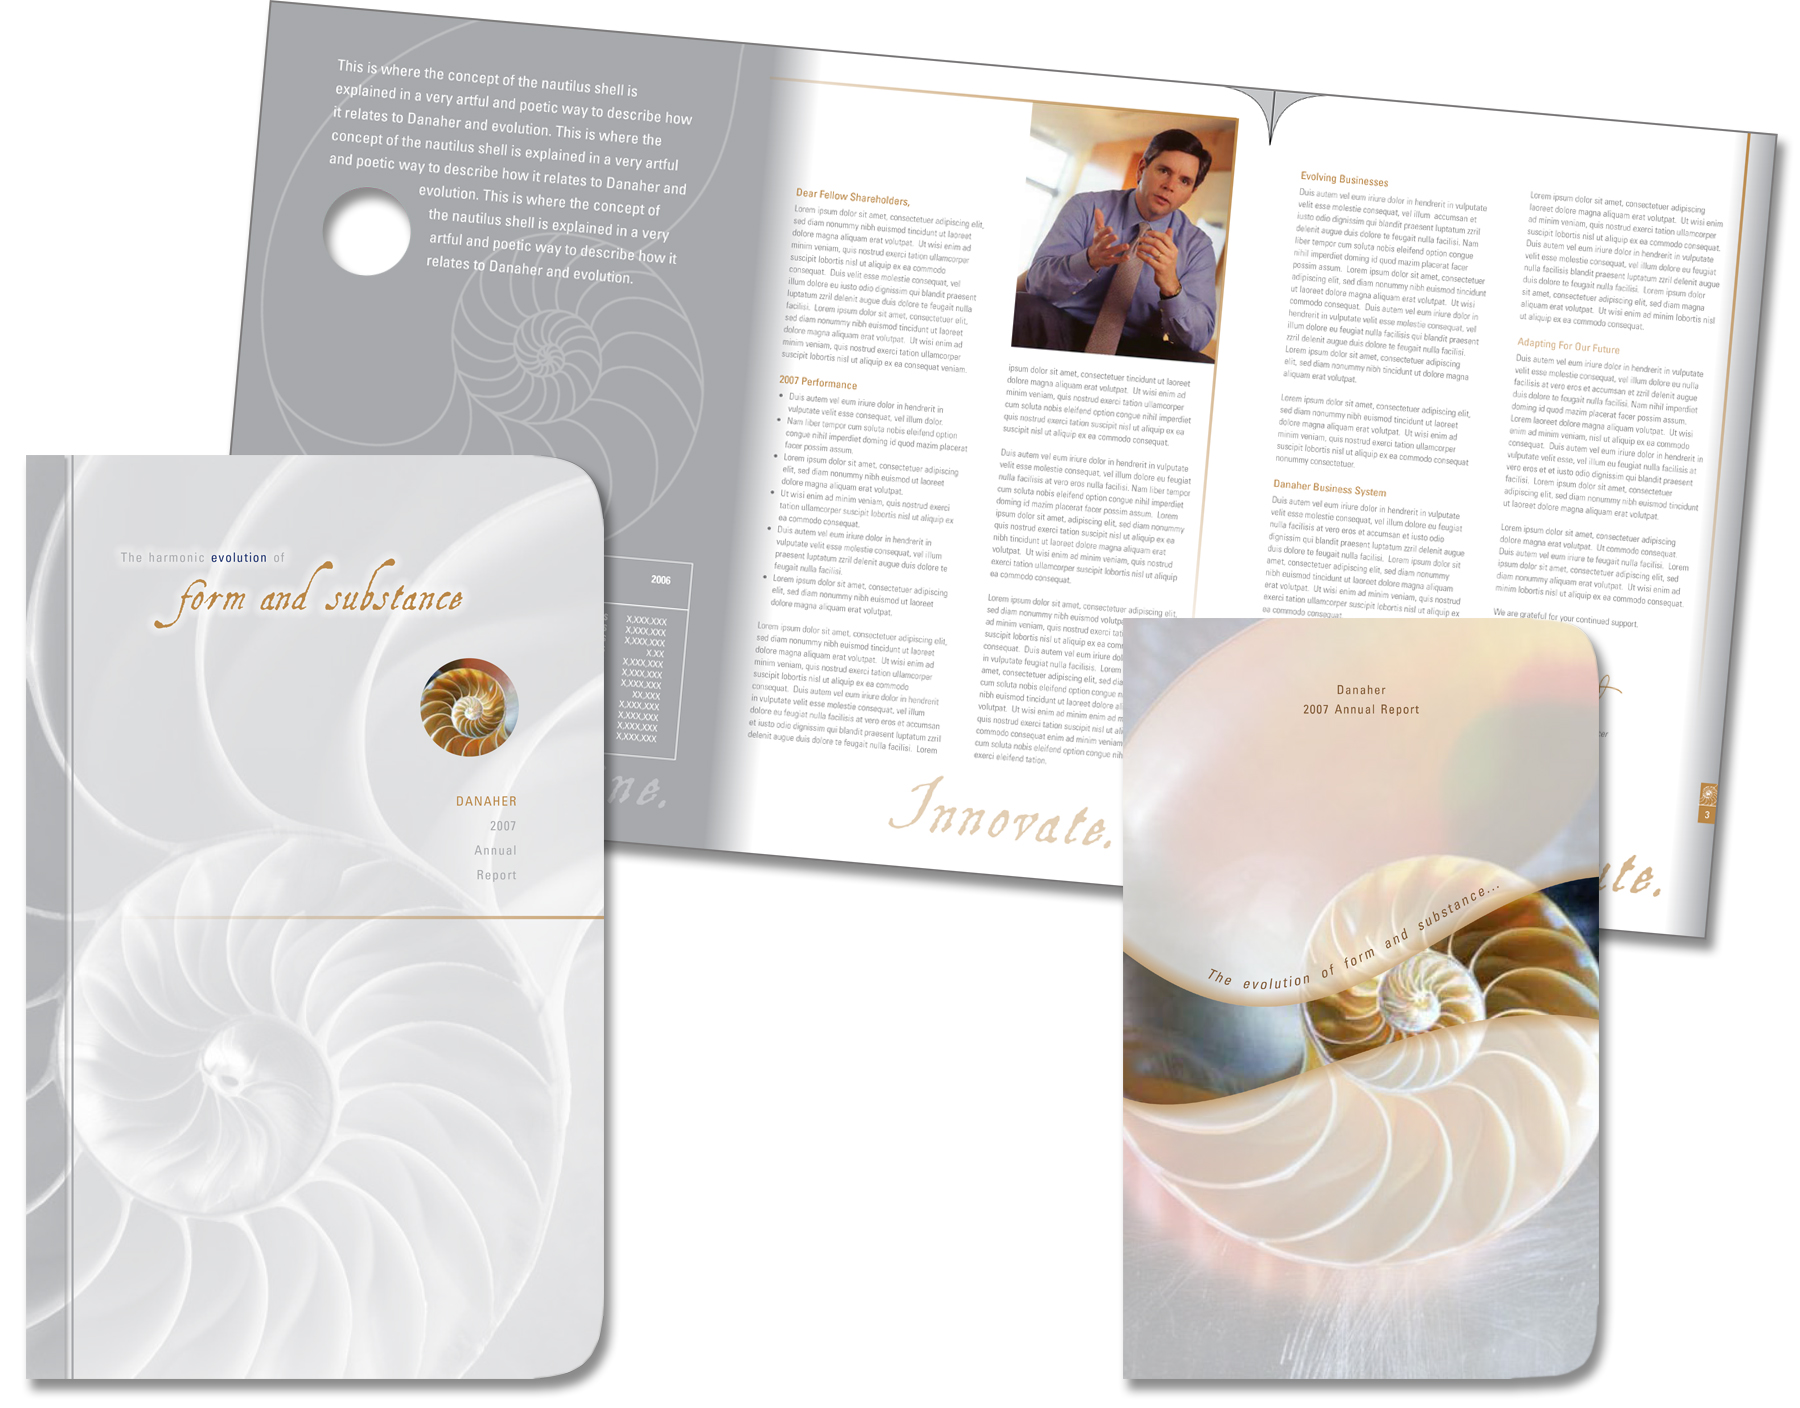 Danaher Corporation Annual Report Nautilus Shell Design